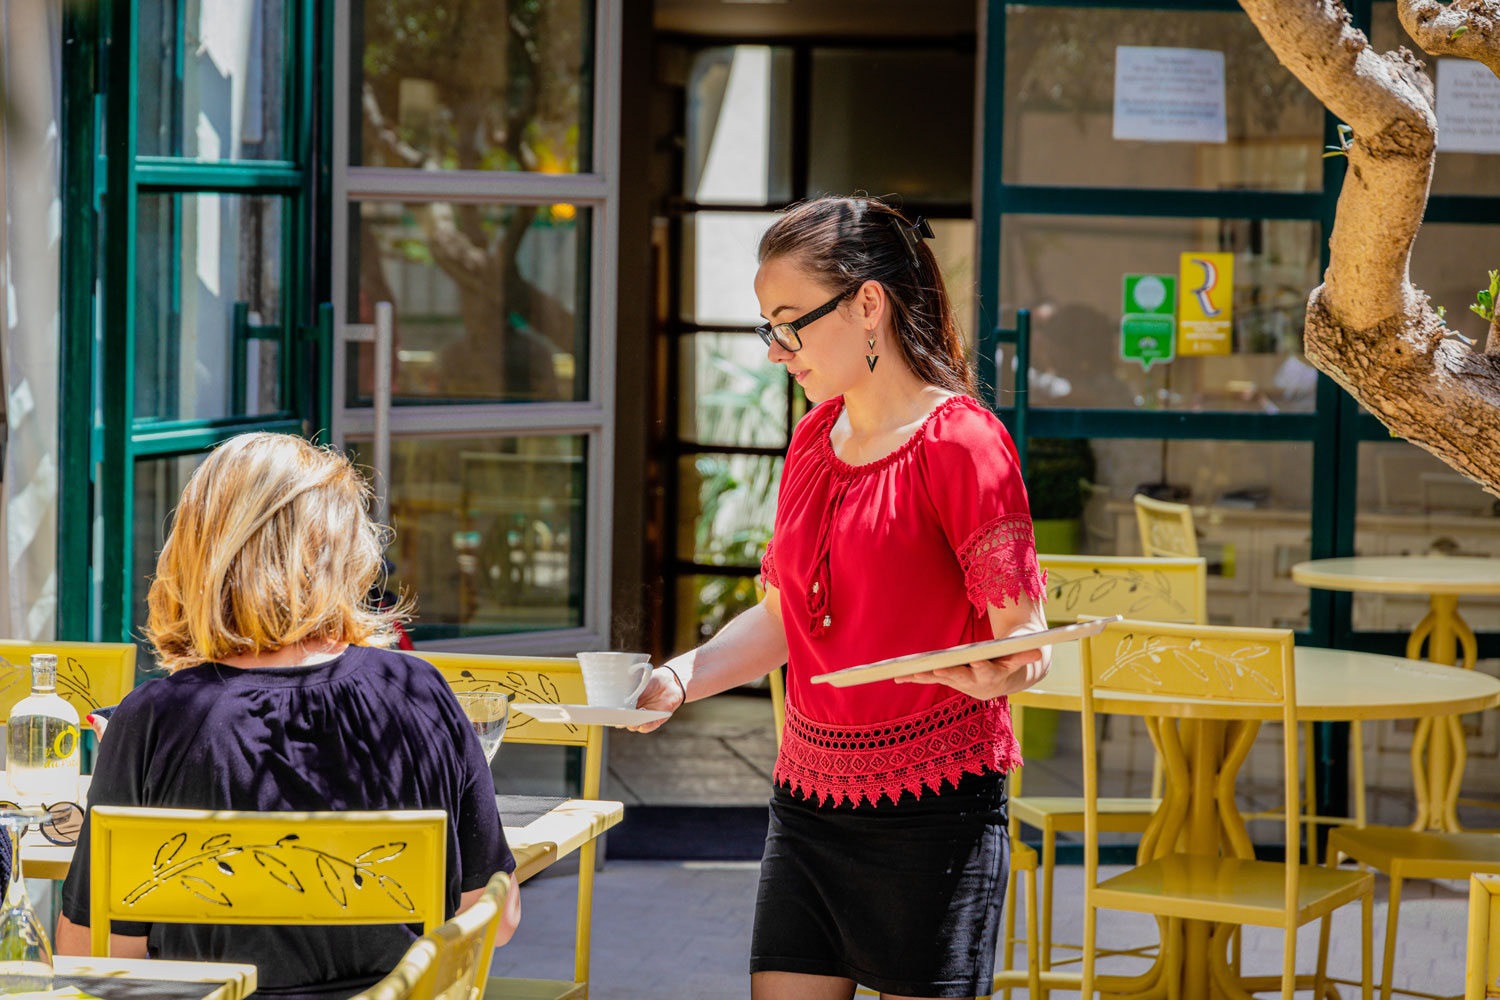 15045_00077-Le-Patio---Beziers-photo-aspheries_1500px